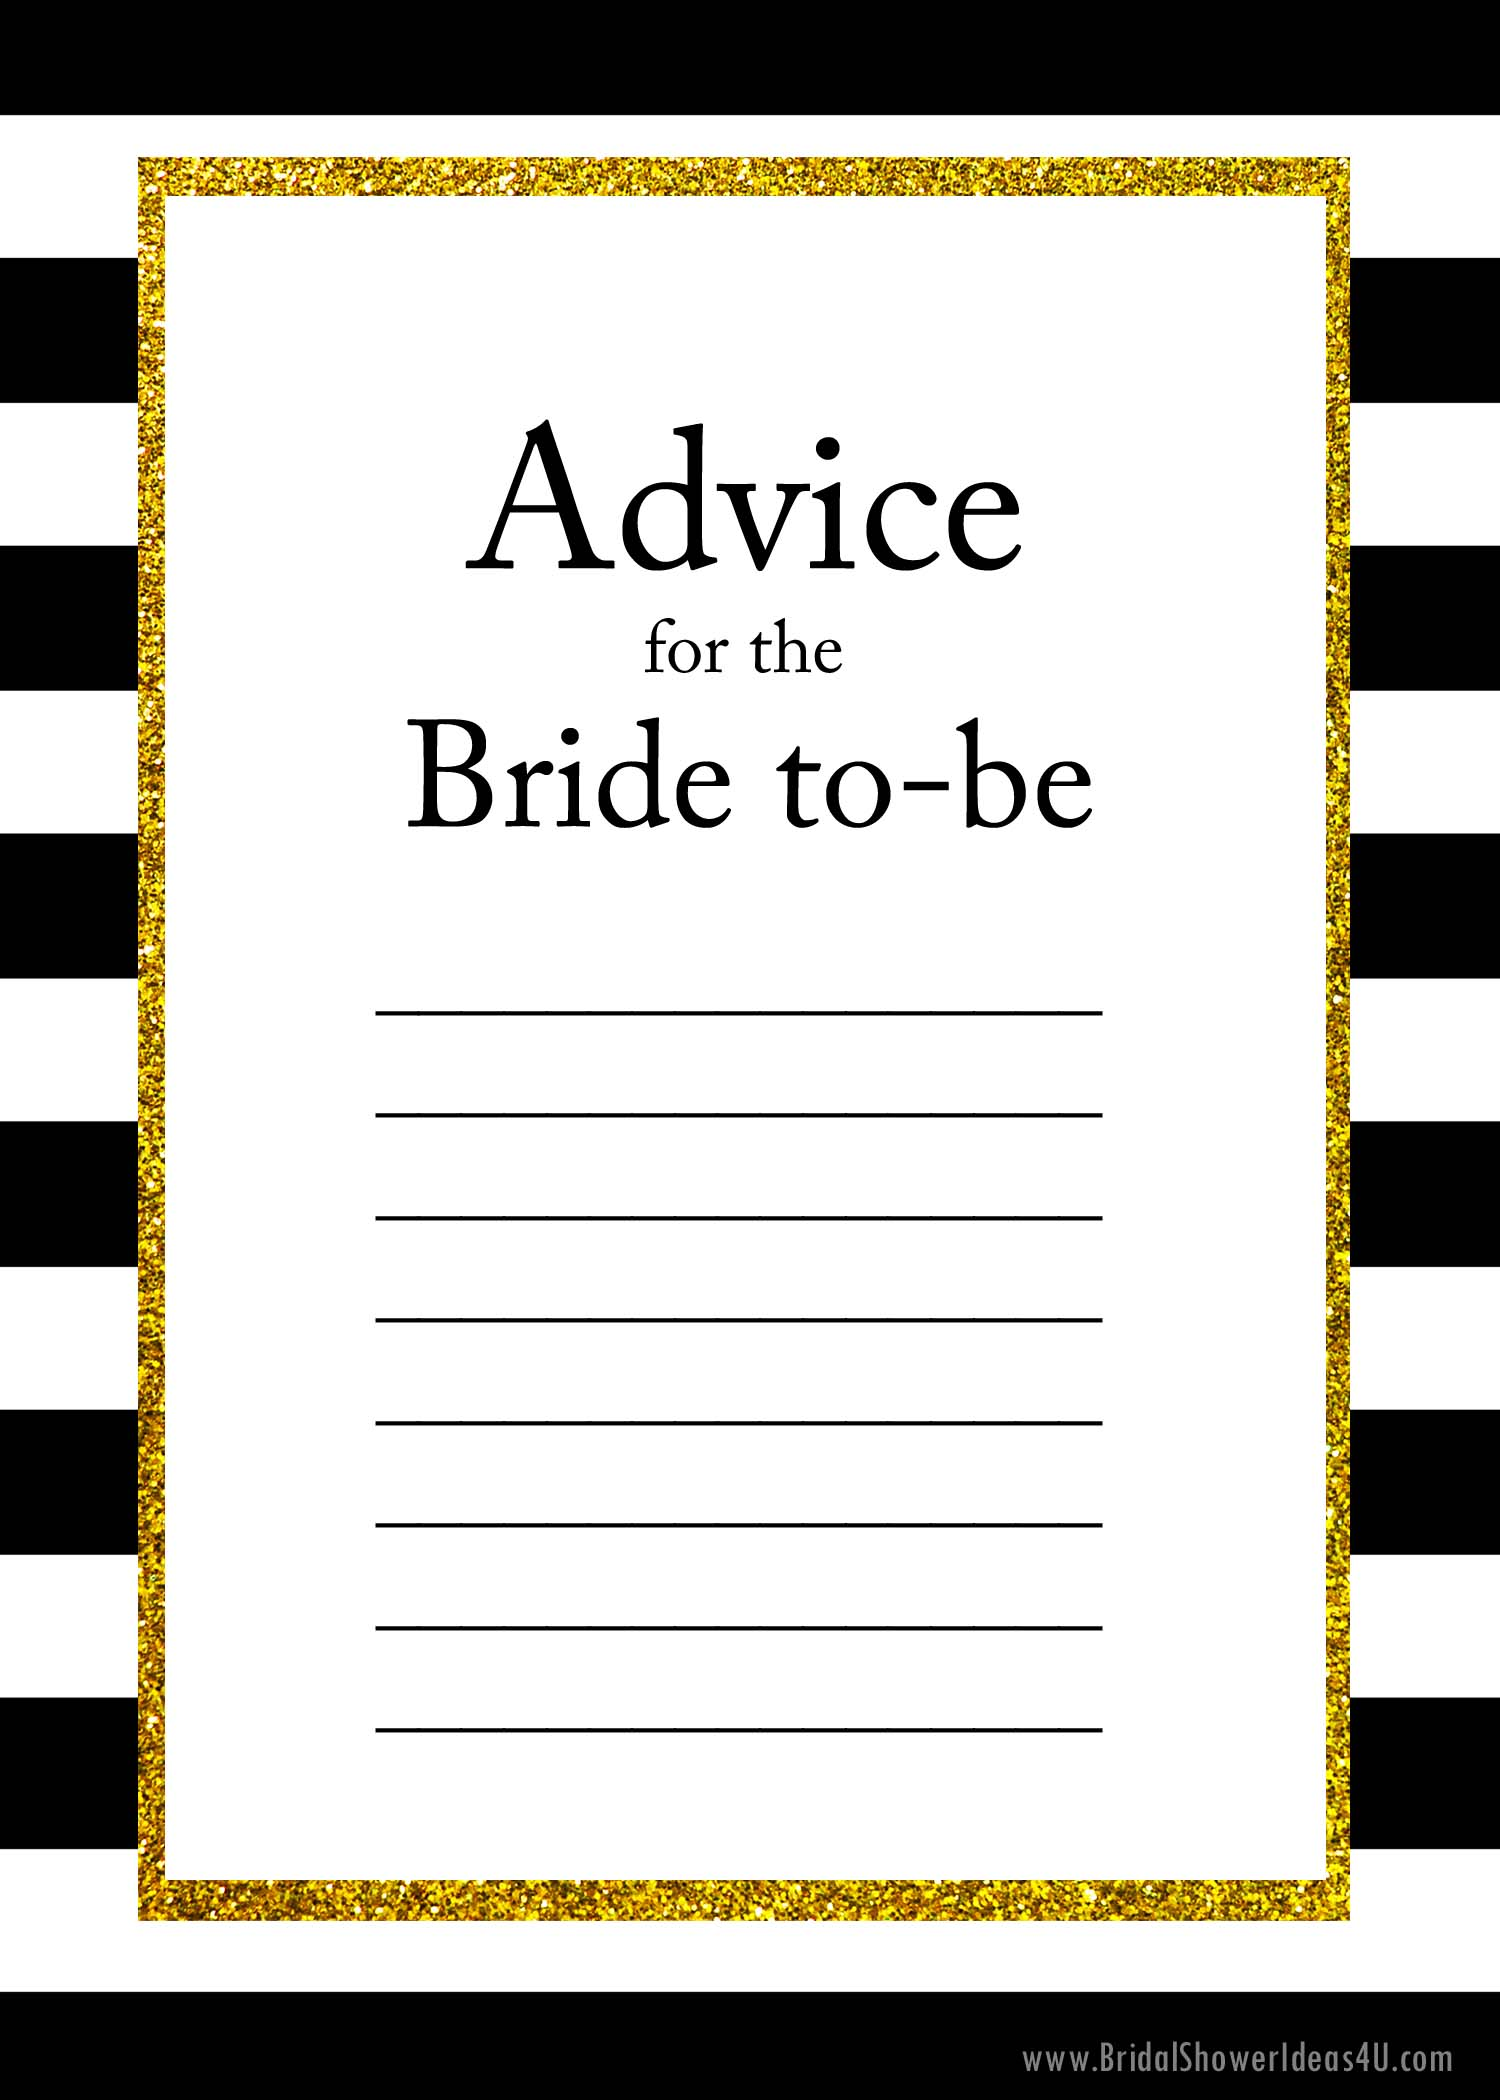 bridal shower advice cards template - free printable advice for the bride to be cards